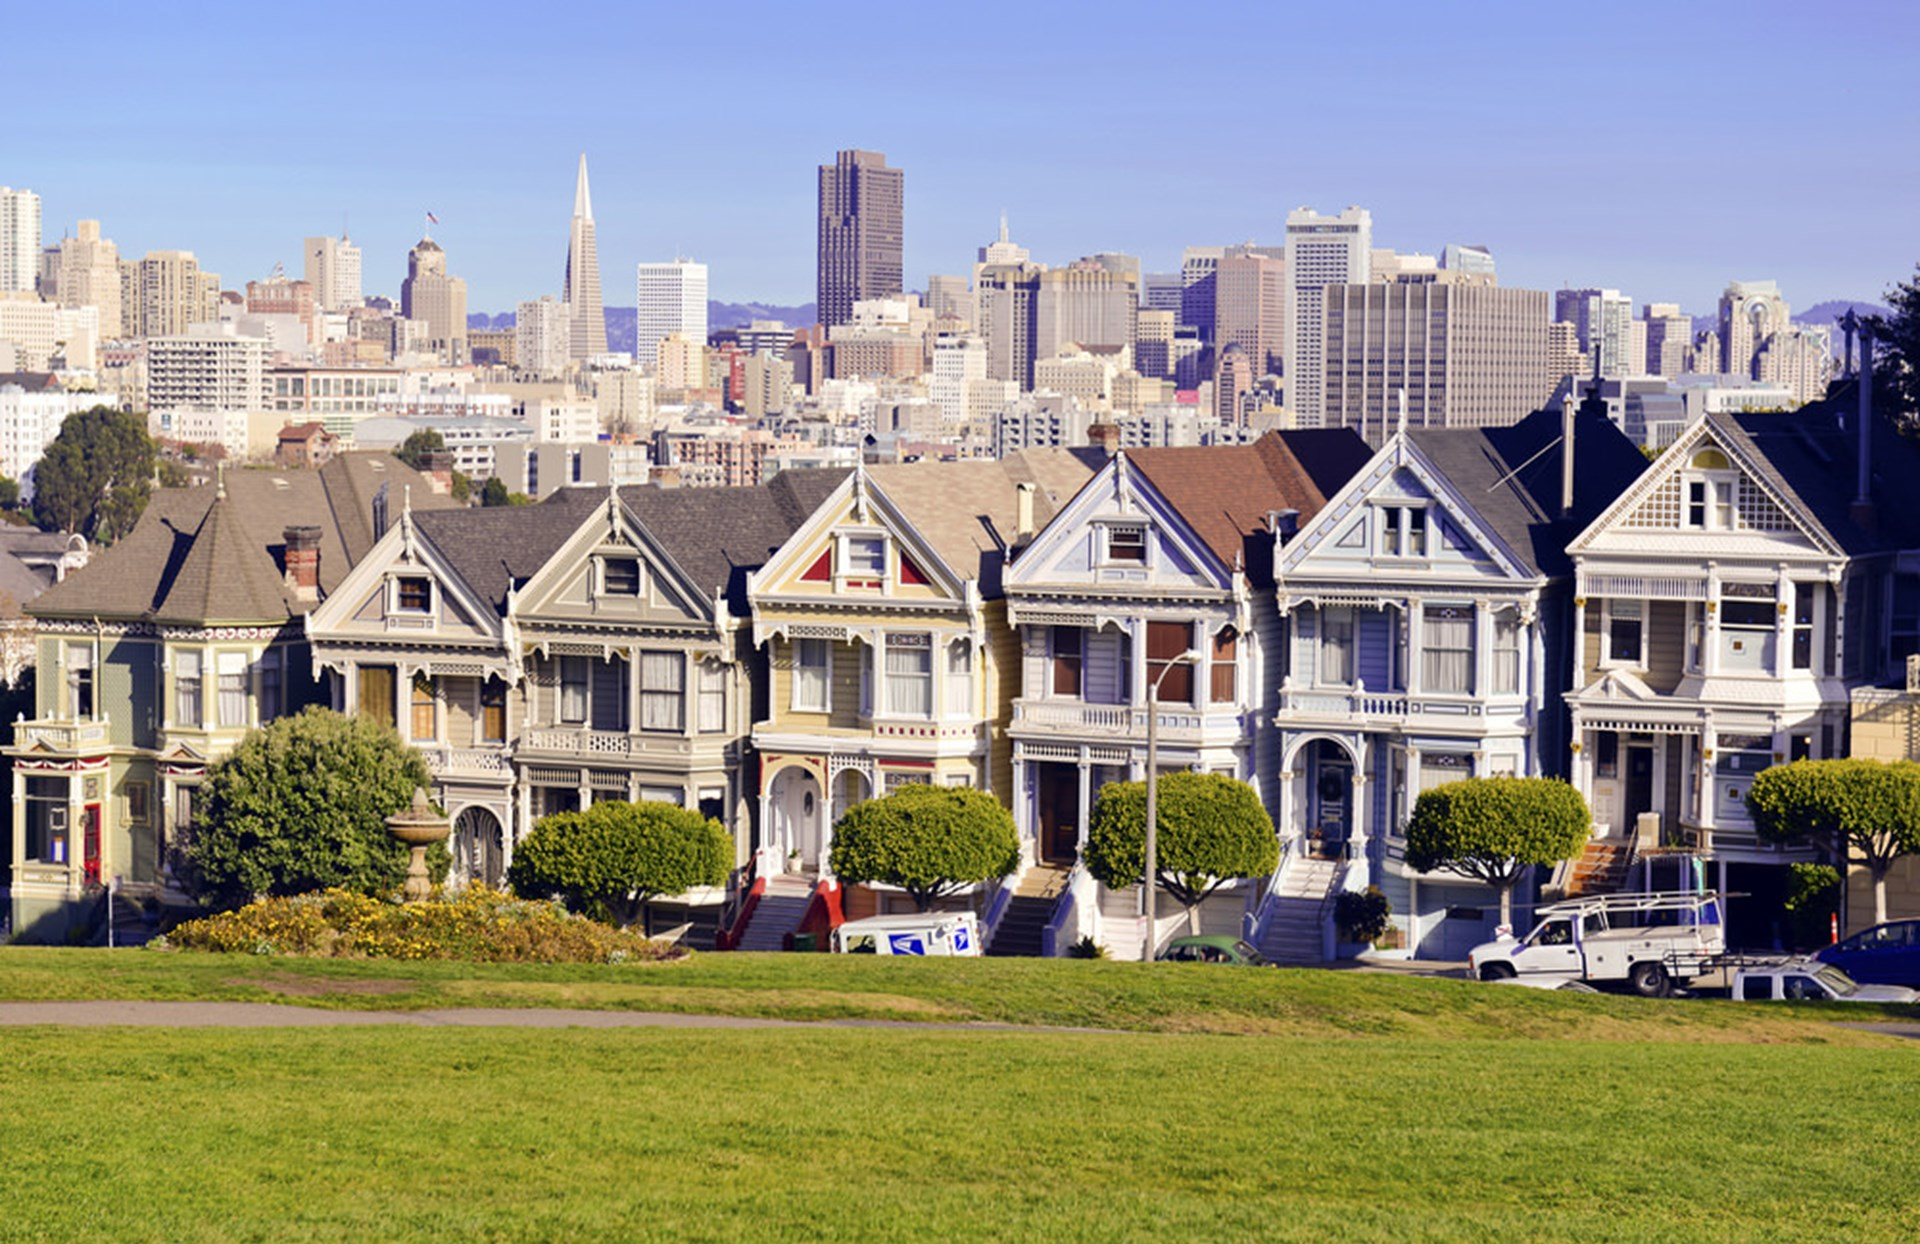 How to Fix San Francisco's Housing Market - Foundation for ...